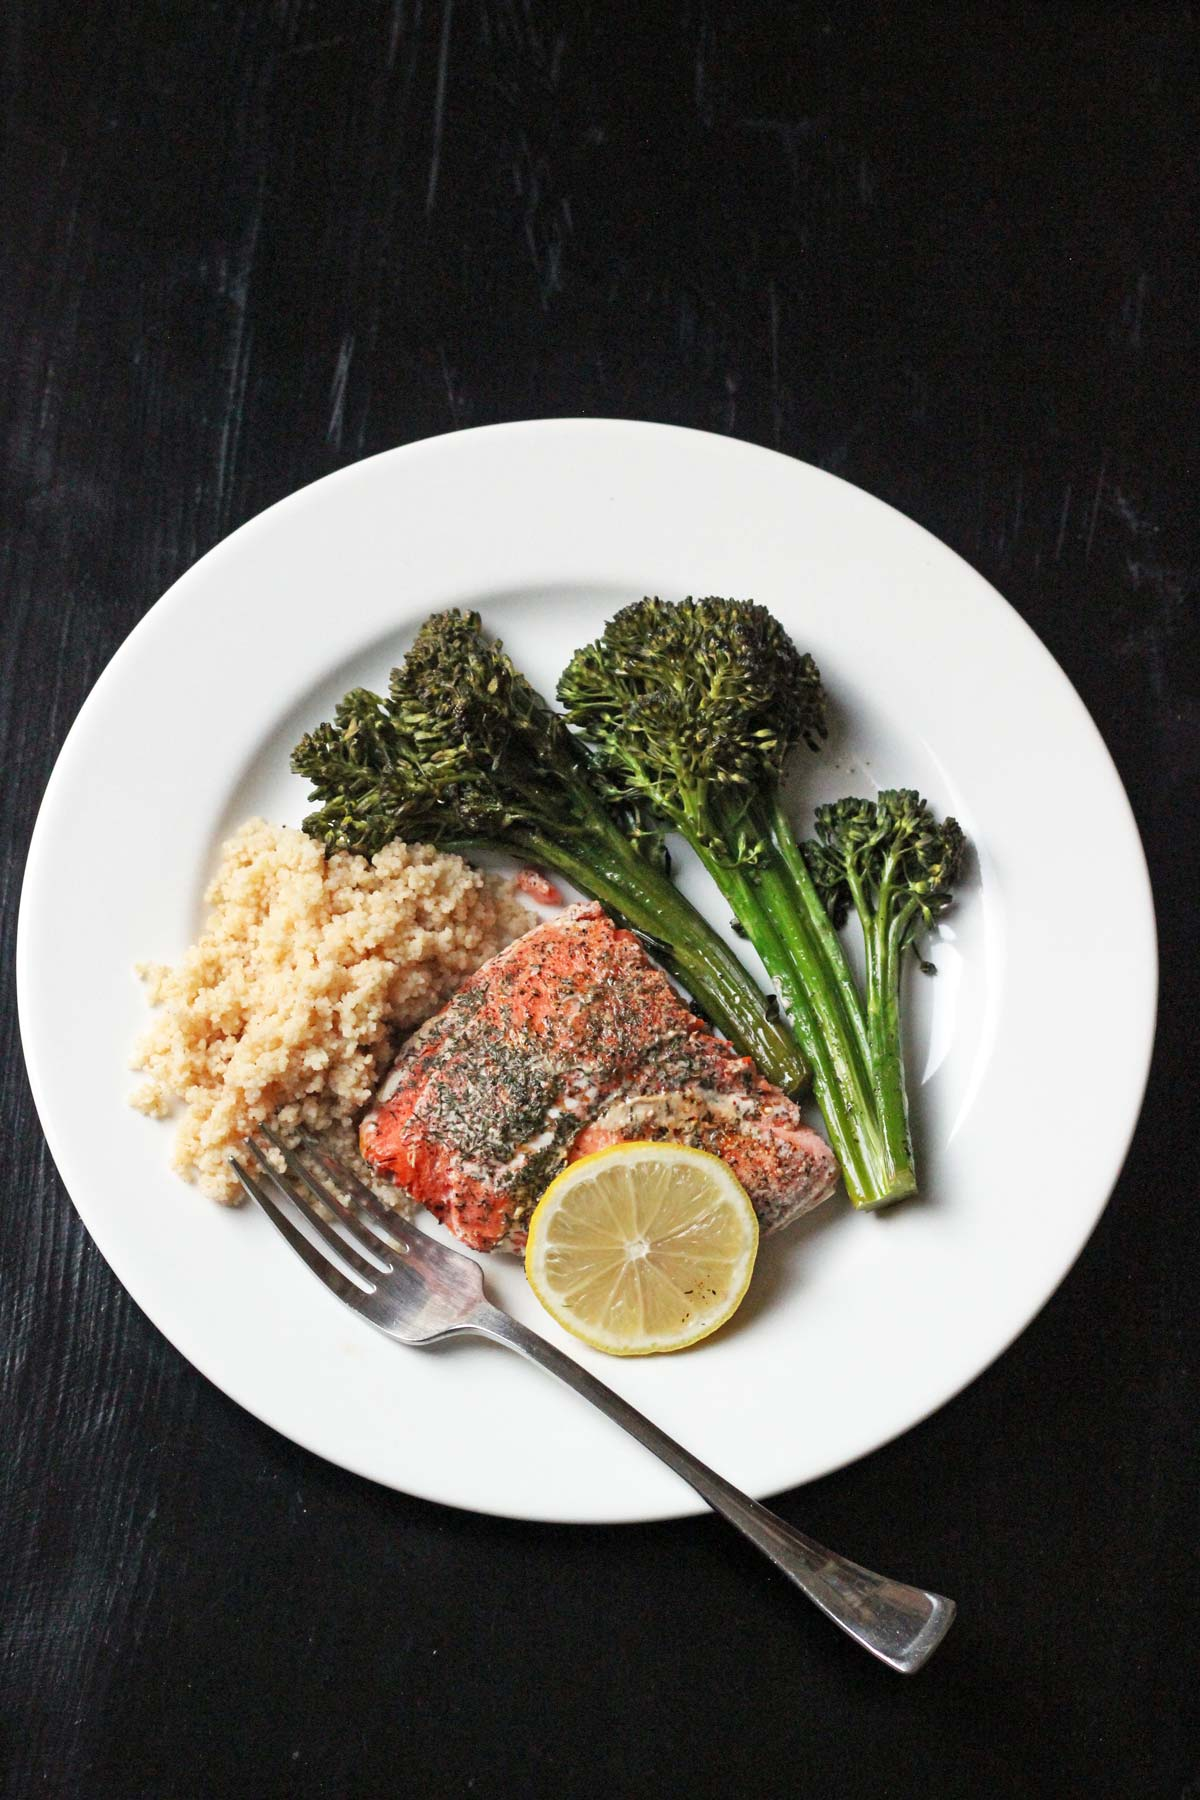 baked salmon and vegetables on a plate